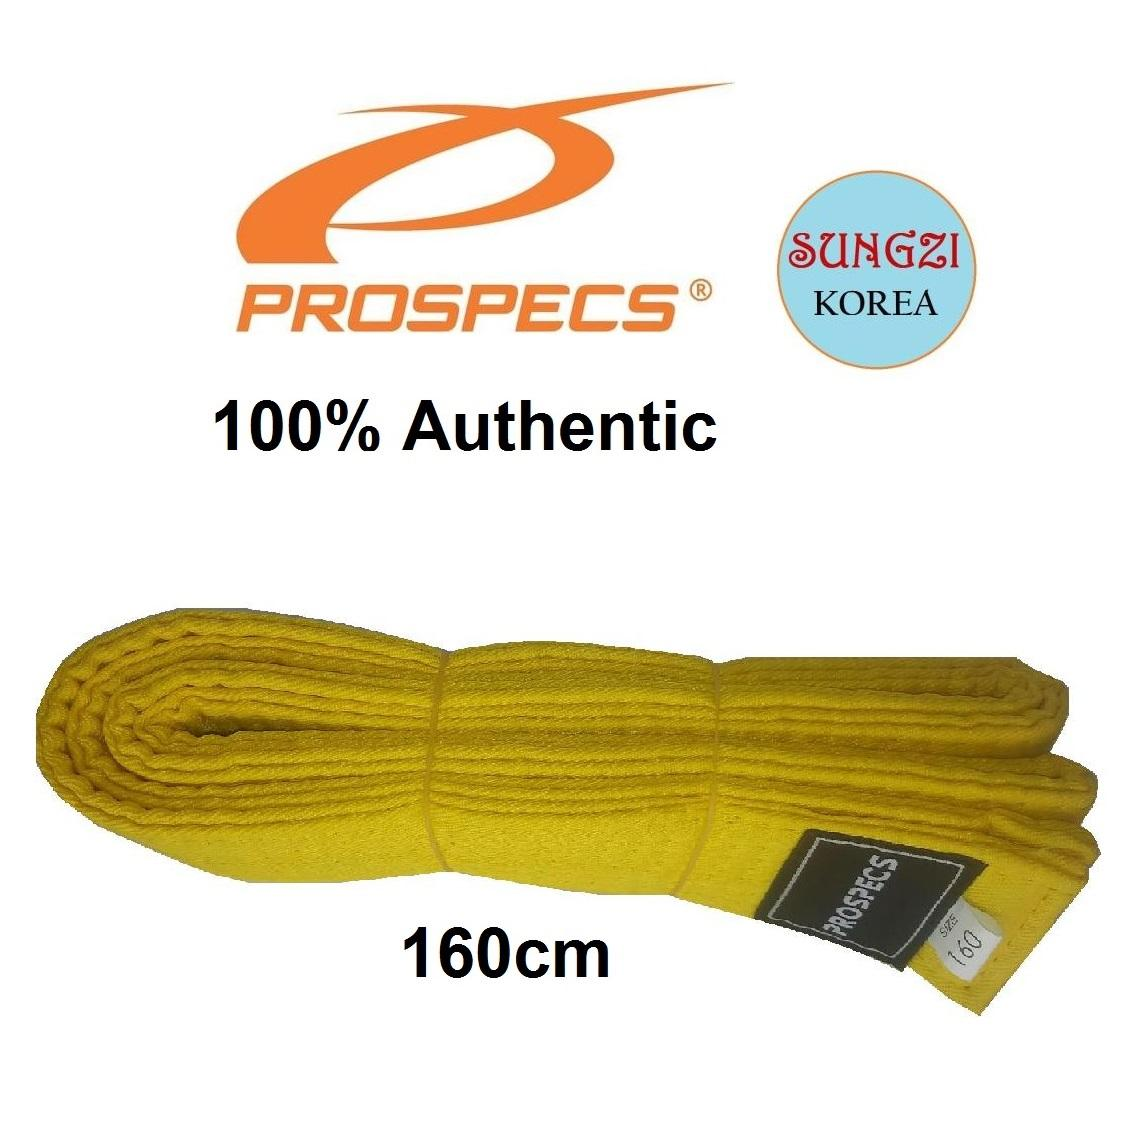 Prospecs Korean Taekwondo Yellow Belt (160cm) image